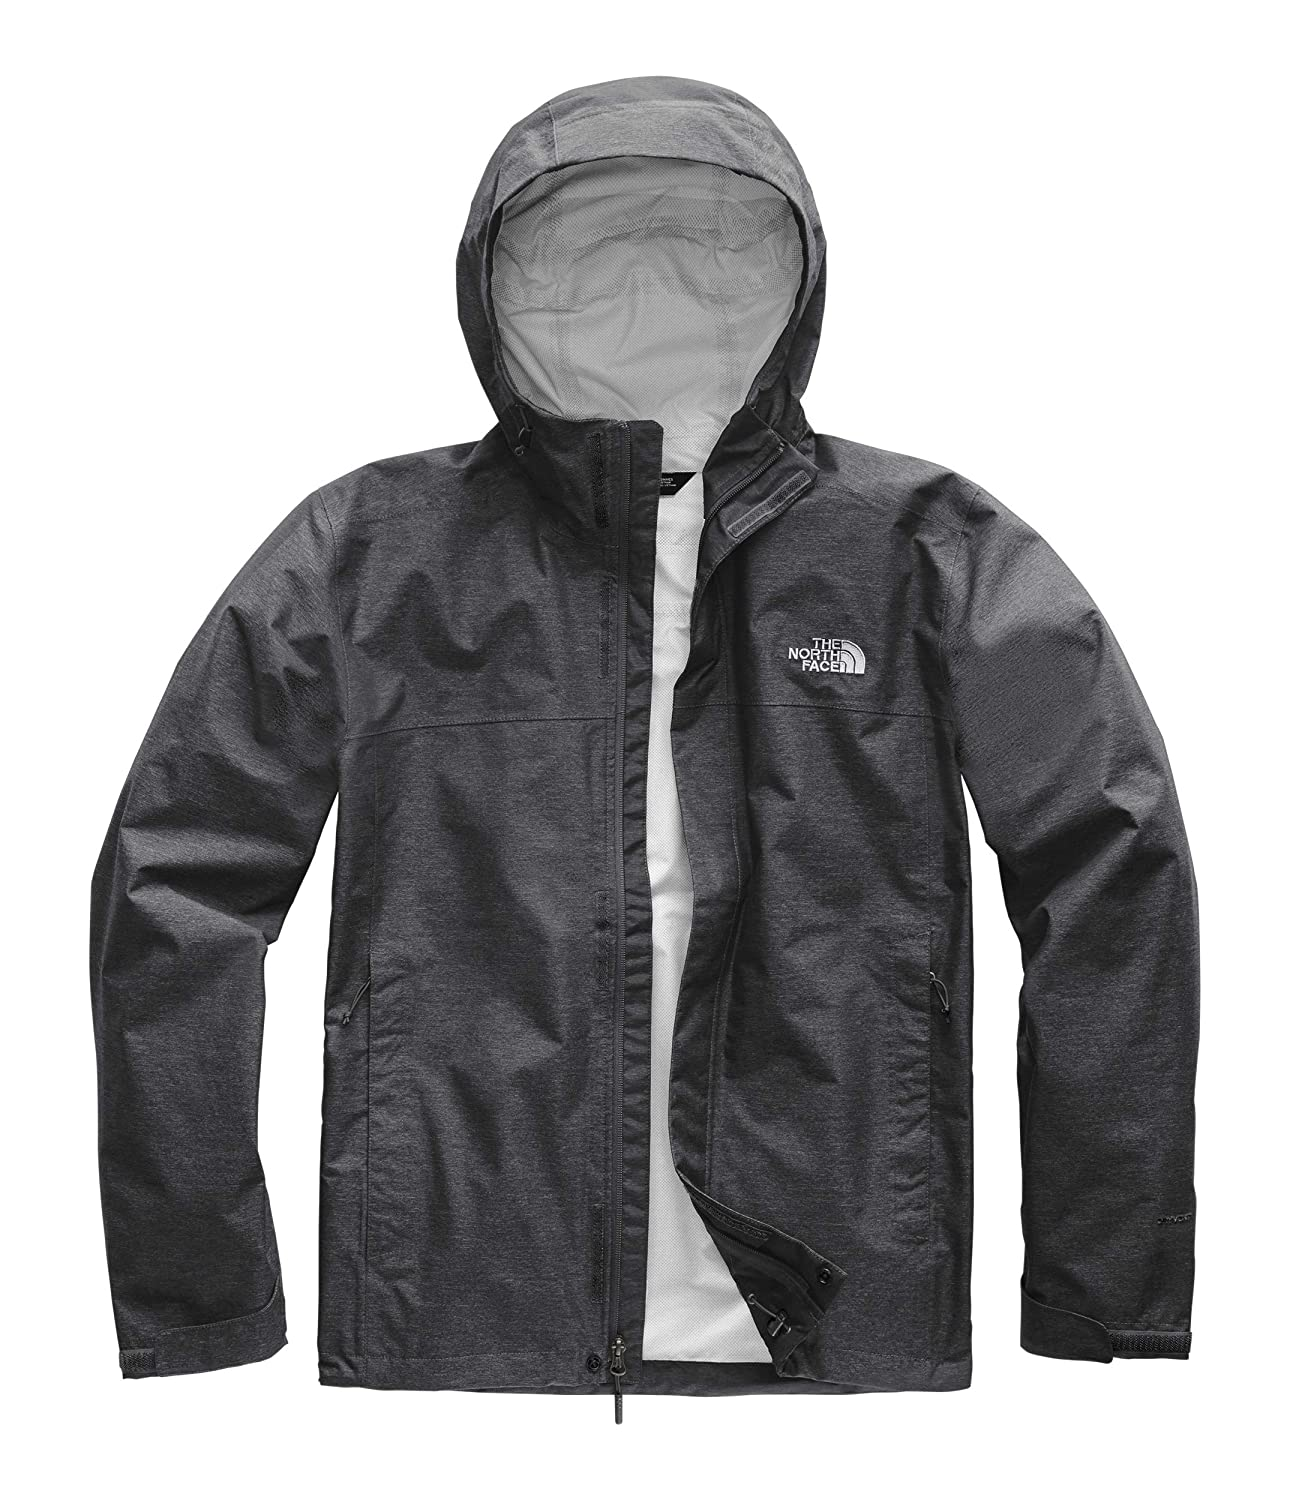 79656ad3c The North Face Men's Venture 2 Jacket Tall